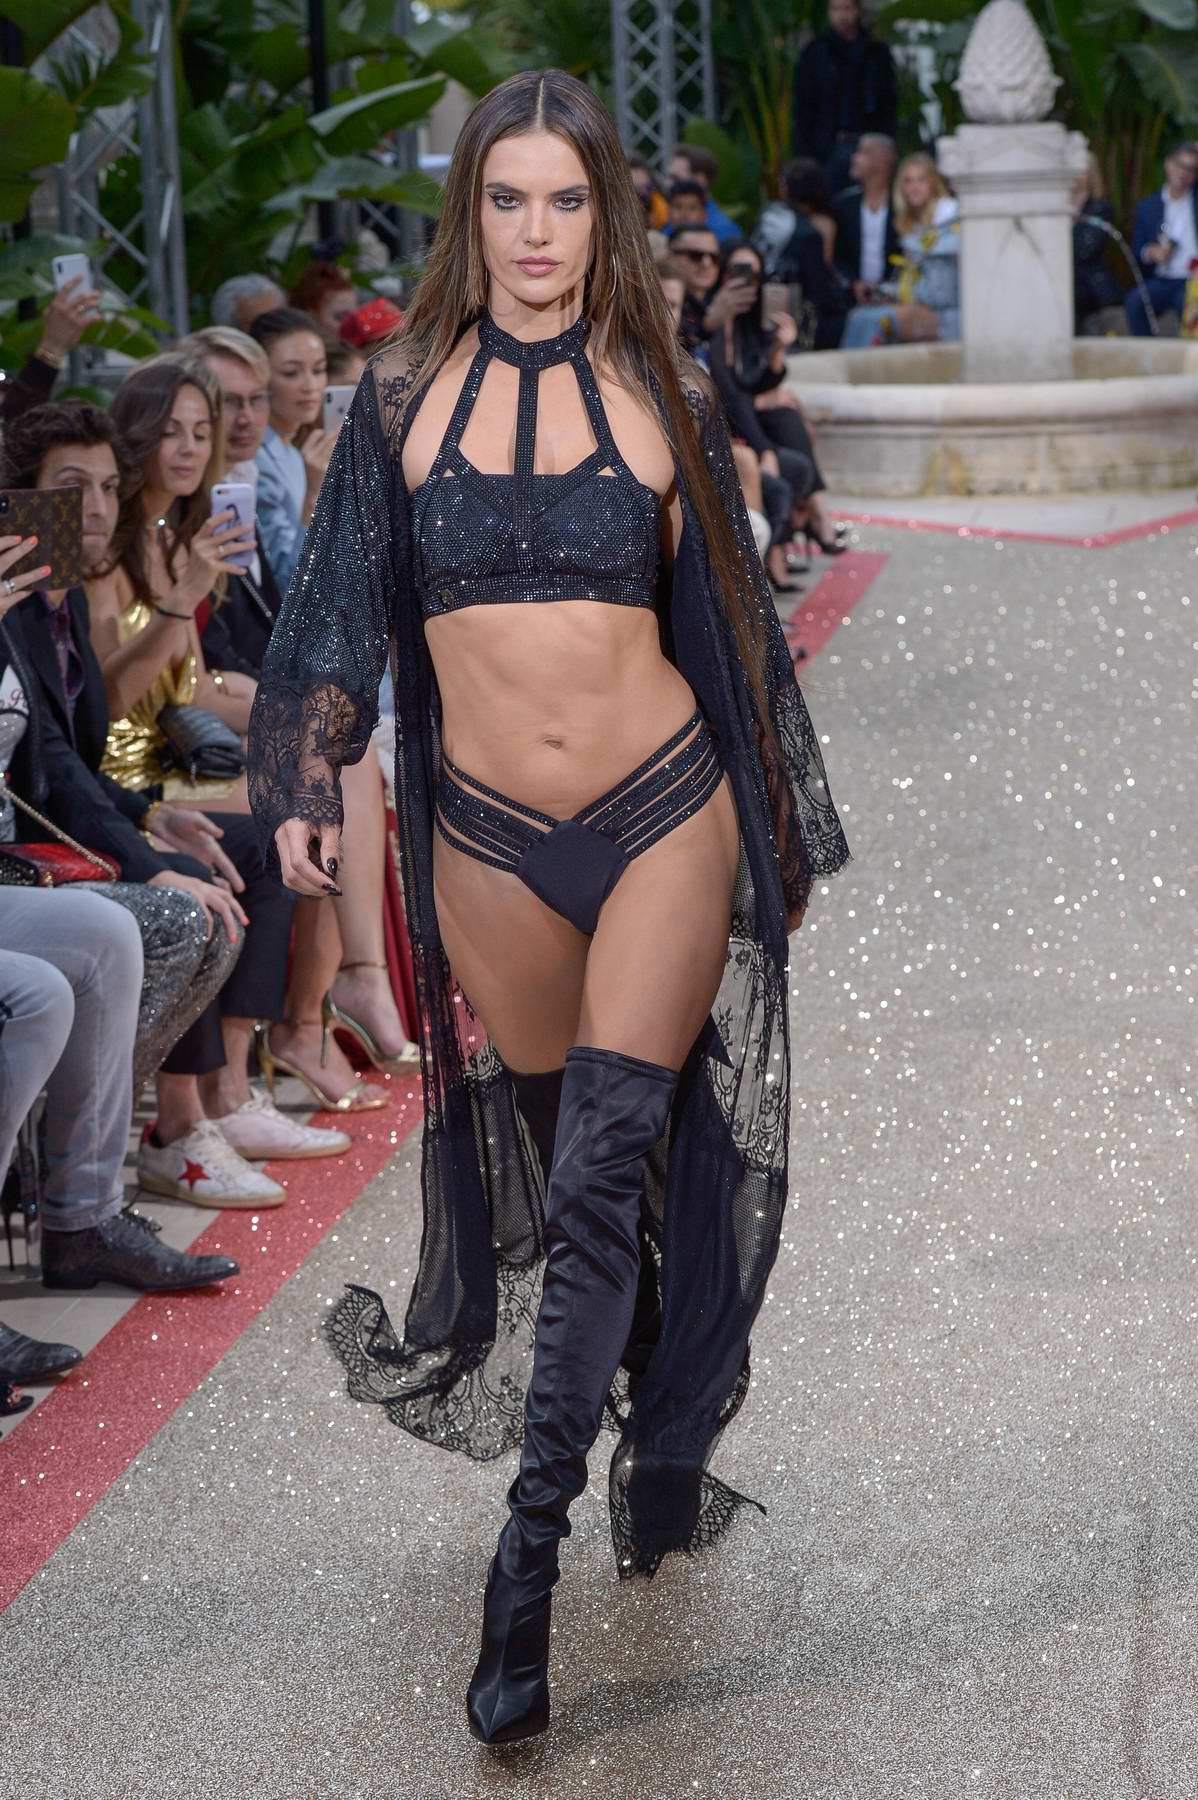 Alessandra Ambrosio walks the runway for Philipp Plein Resort show during the 71st Cannes Film Festival in Cannes, France